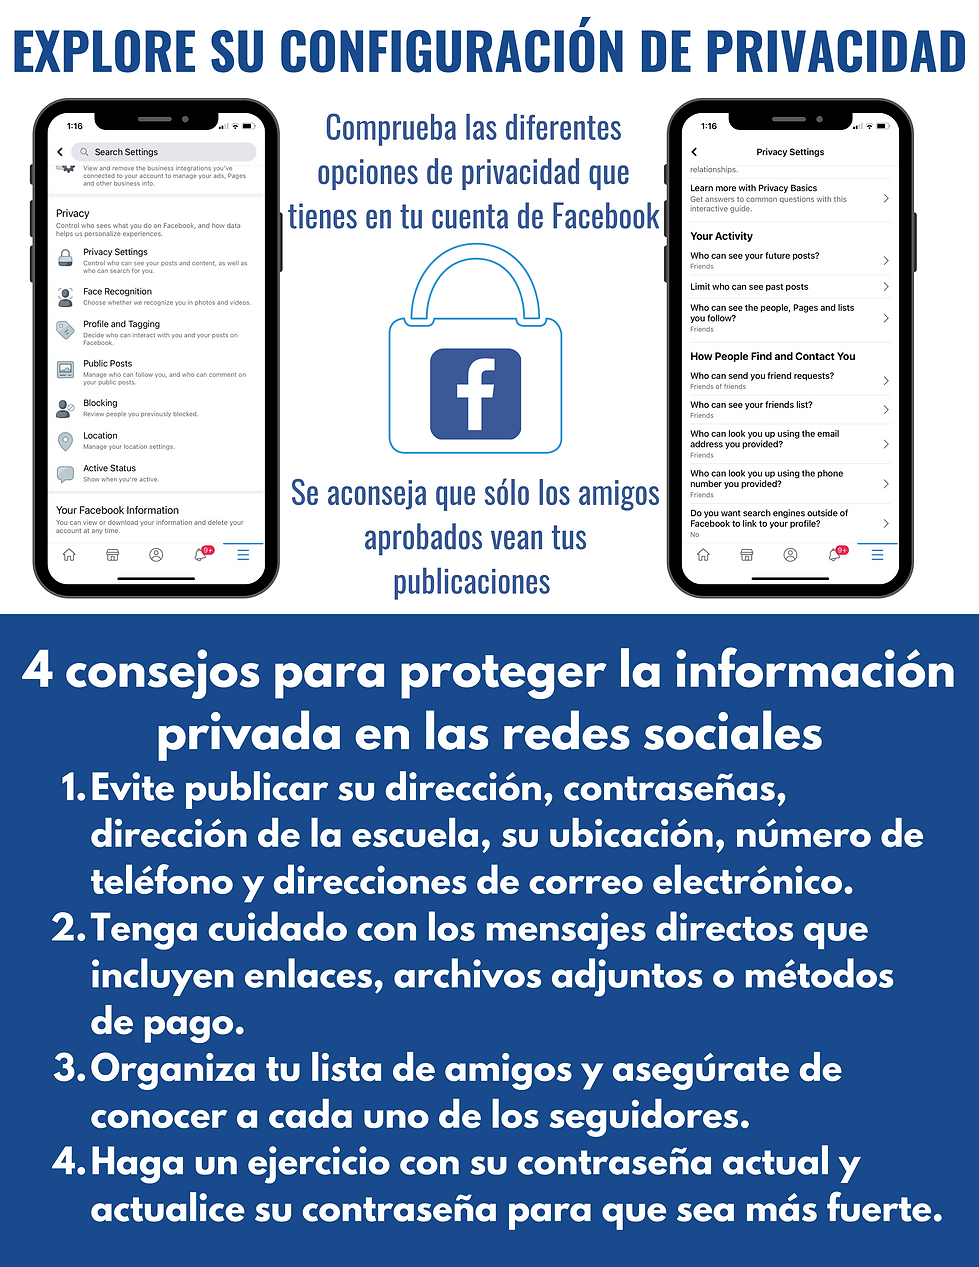 Spanish - Protect Info Challenge.png